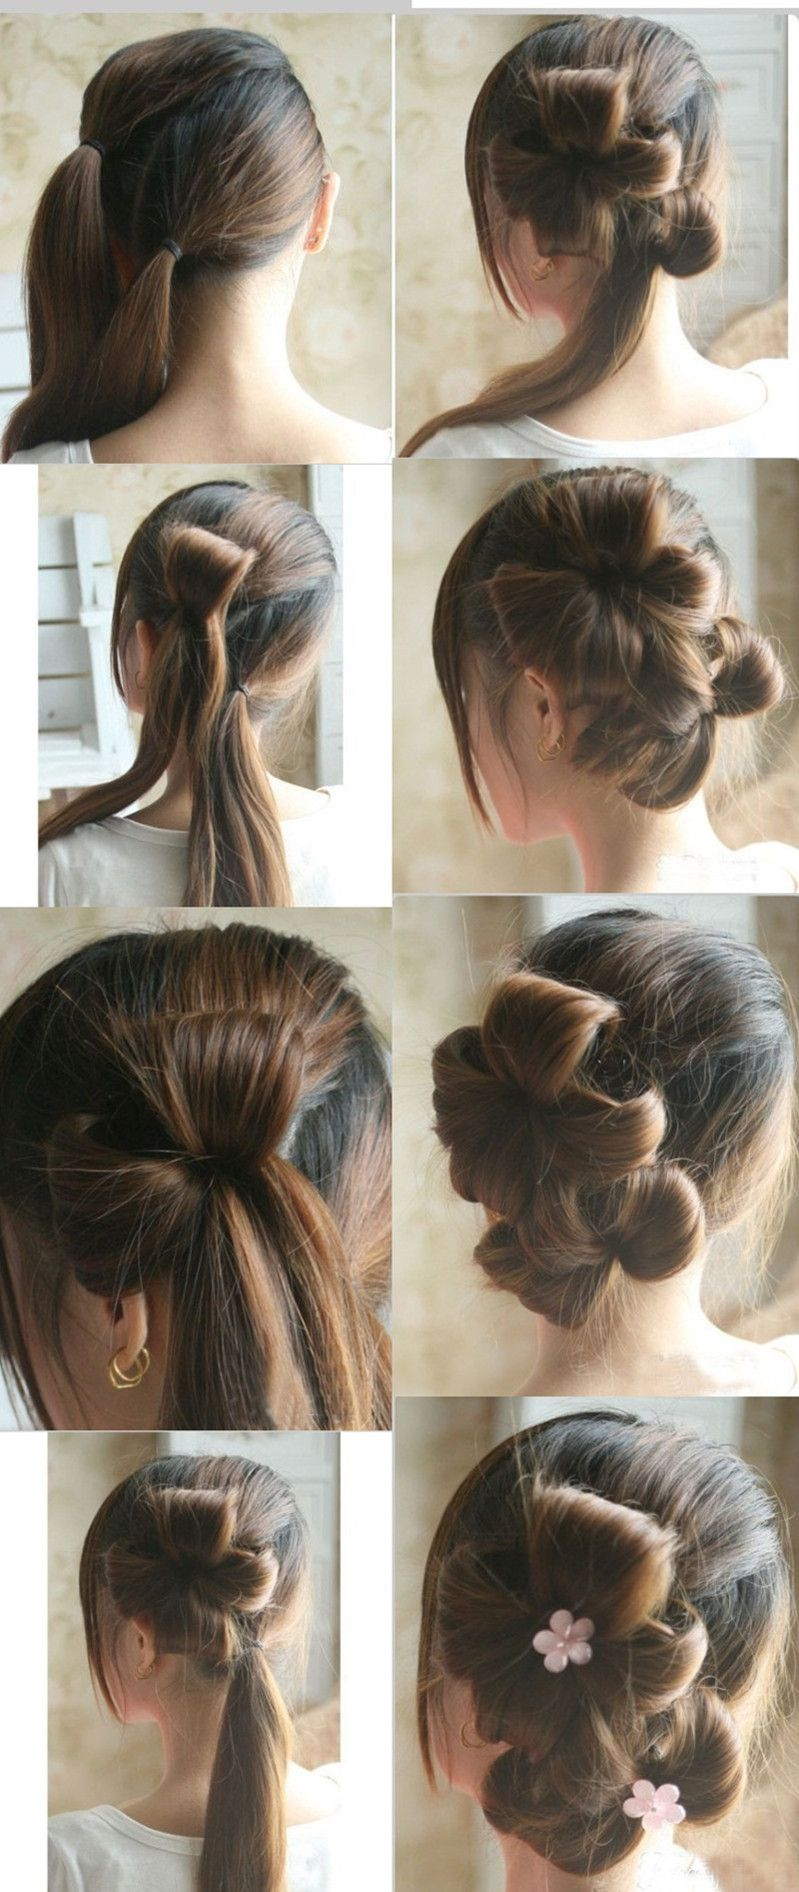 Try it out double floral hair pictorial amy pinterest